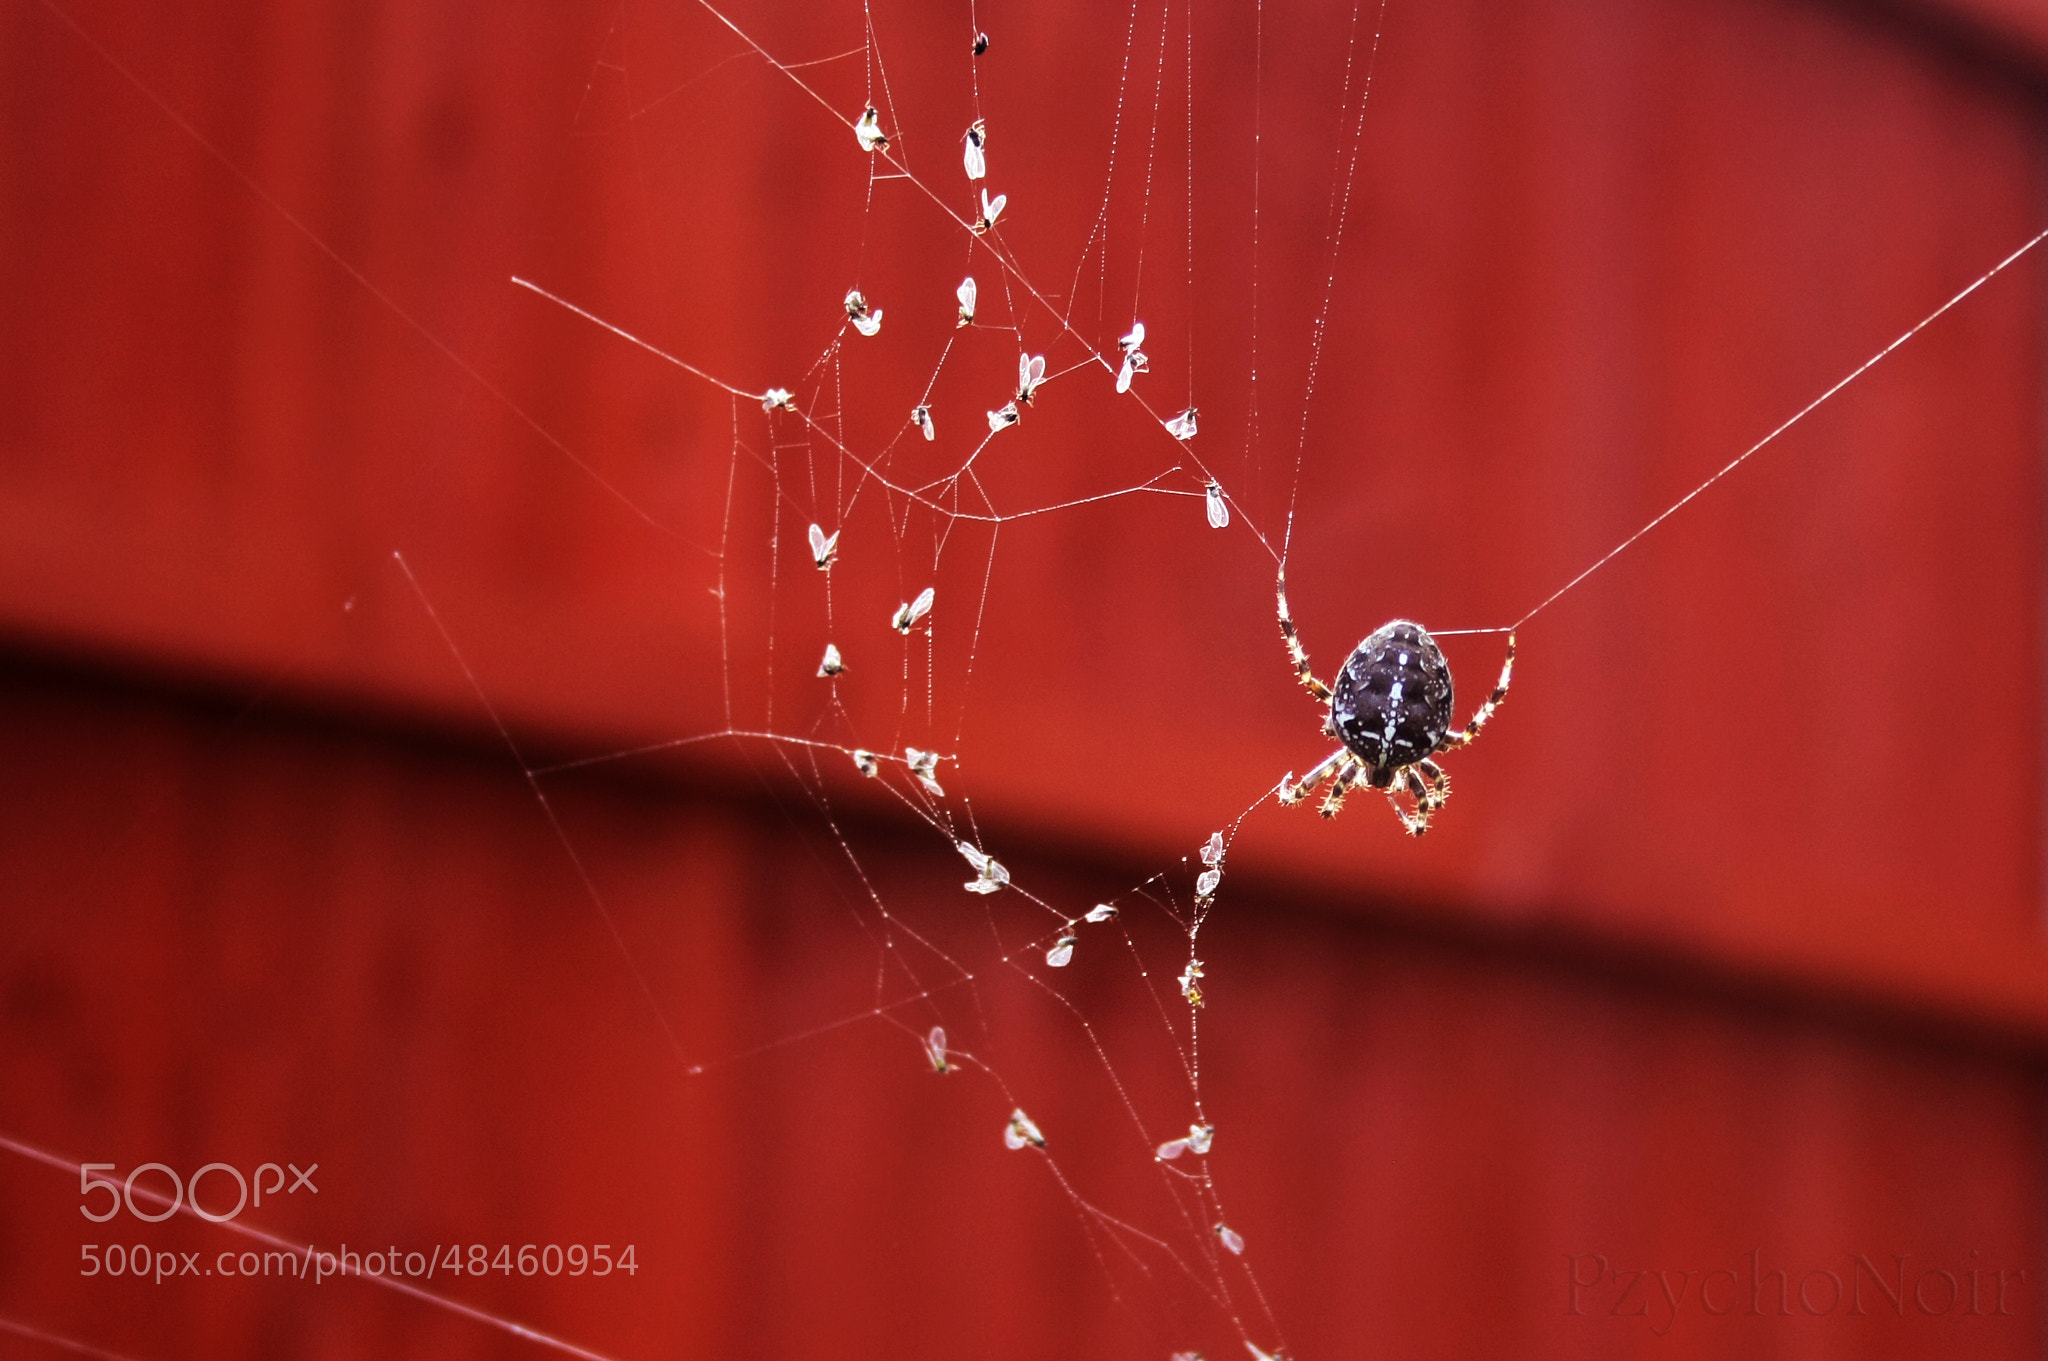 Photograph Spider at Work by Laurais Arts on 500px